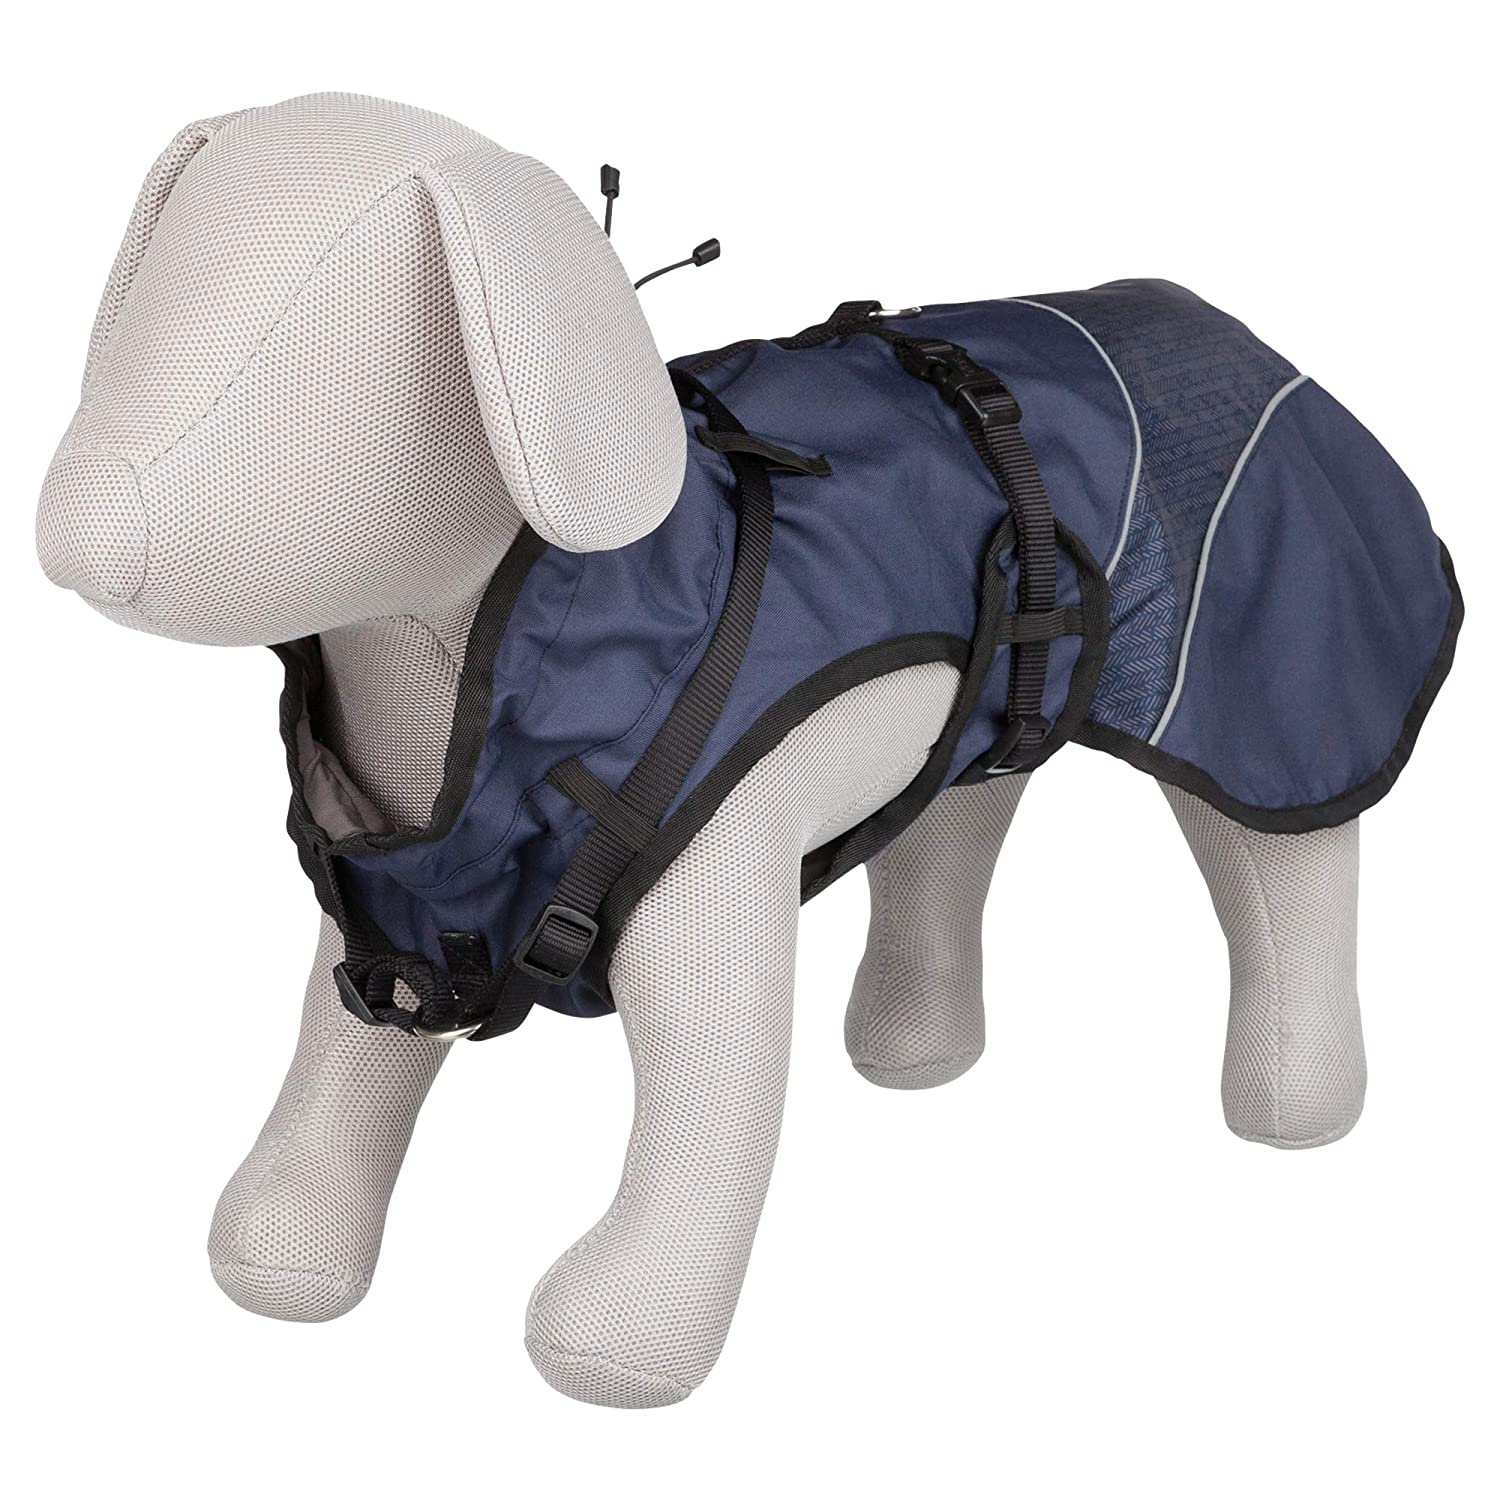 Trixie Duo Coat With Harness M 50cm bluee